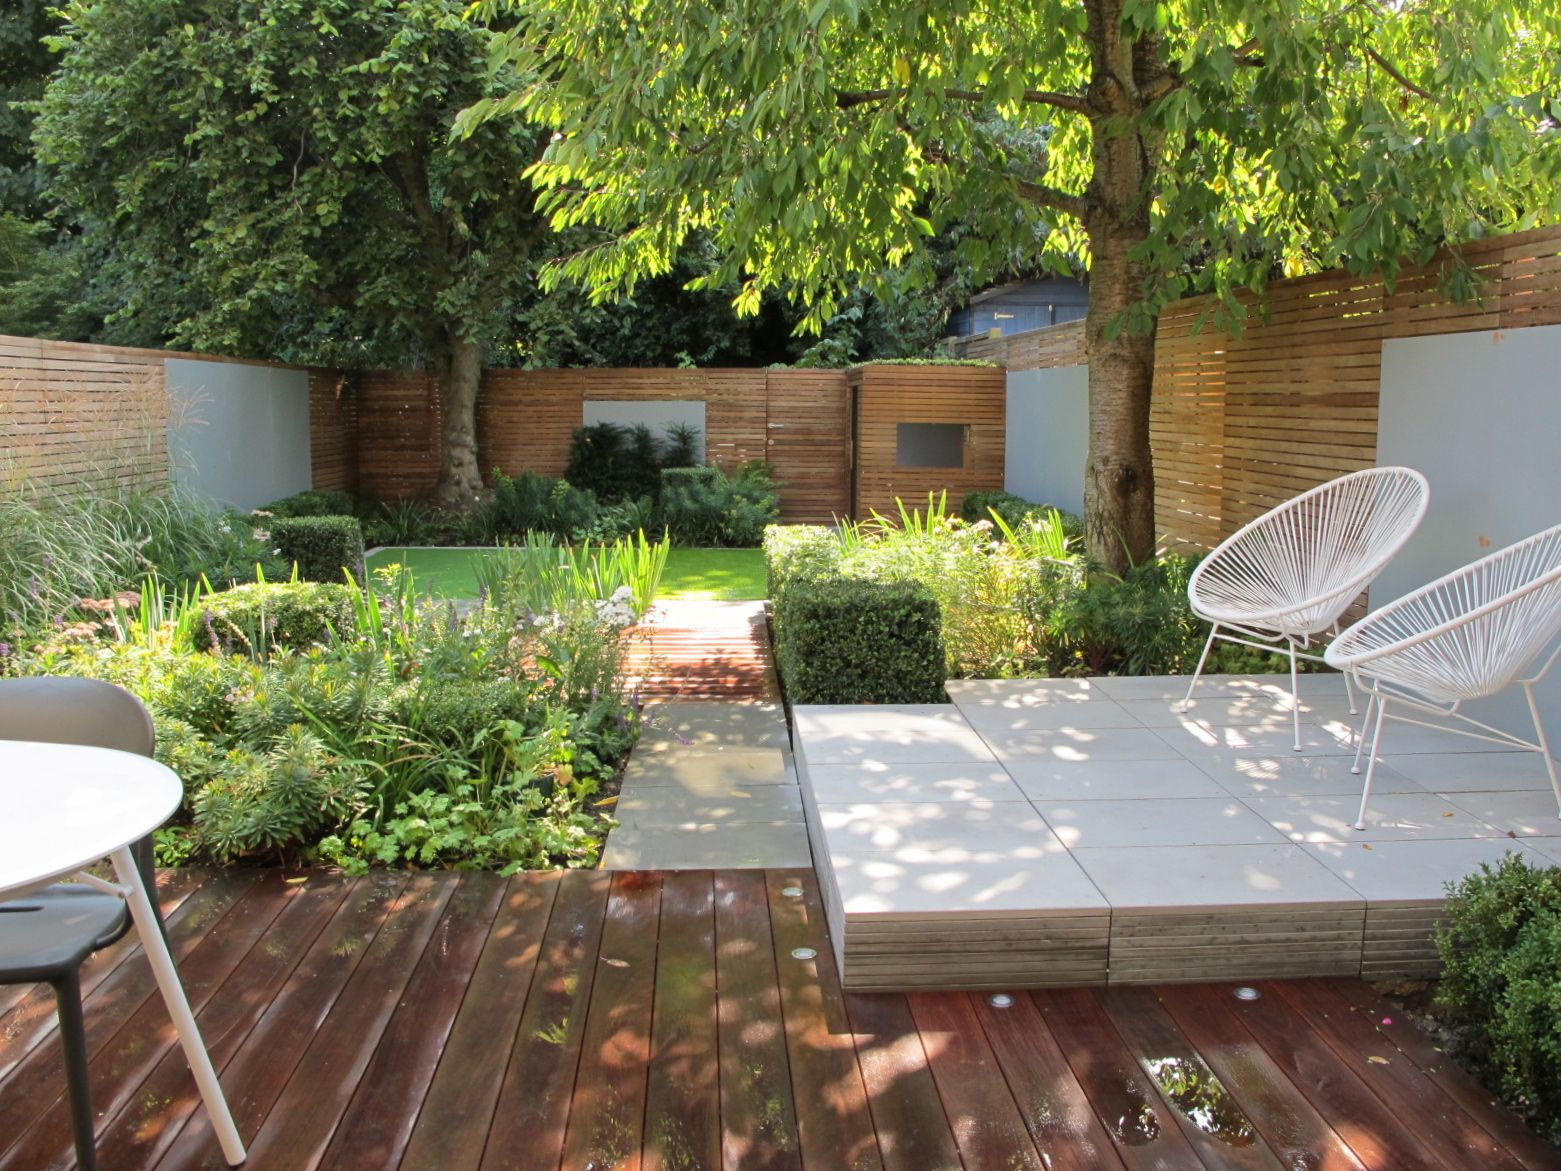 Garden as featured on alan titchmarsh 39 s show love your garden itv north london garden - Garden ideas london ...